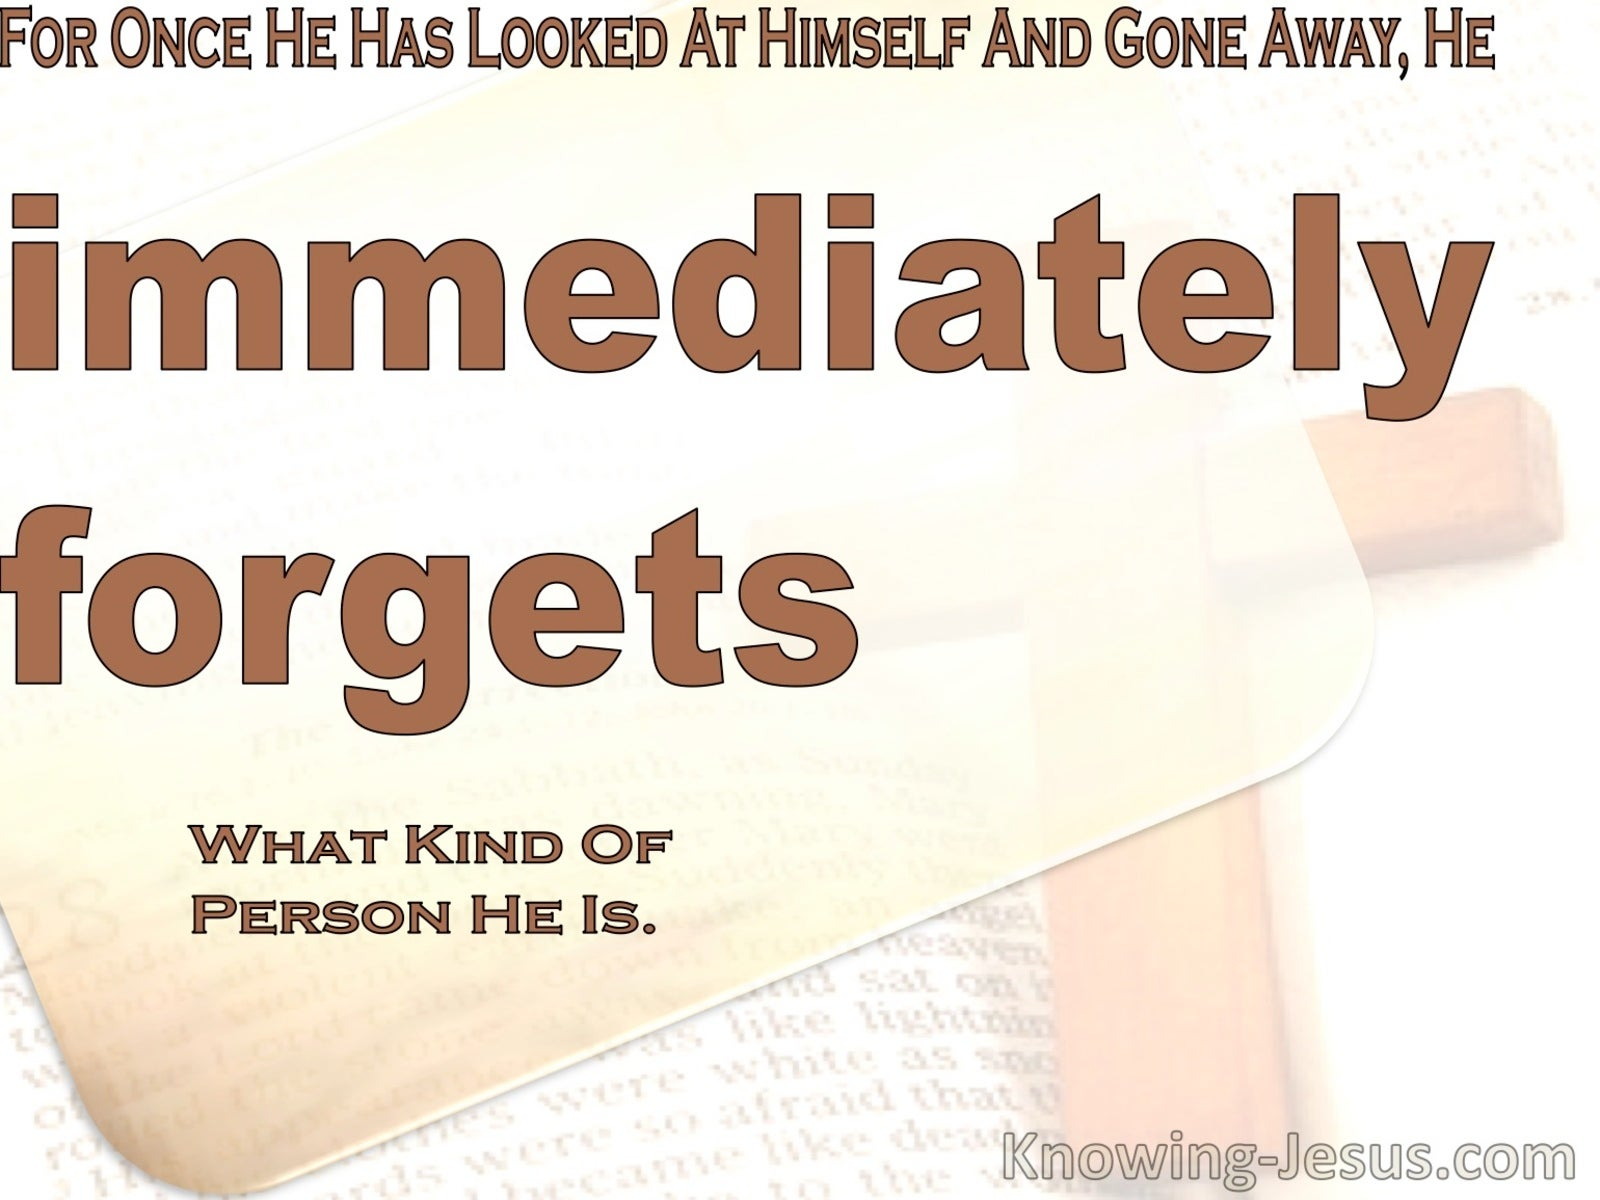 James  1-24 He Immediately Forgets What Kind Of Person He Was (brown)